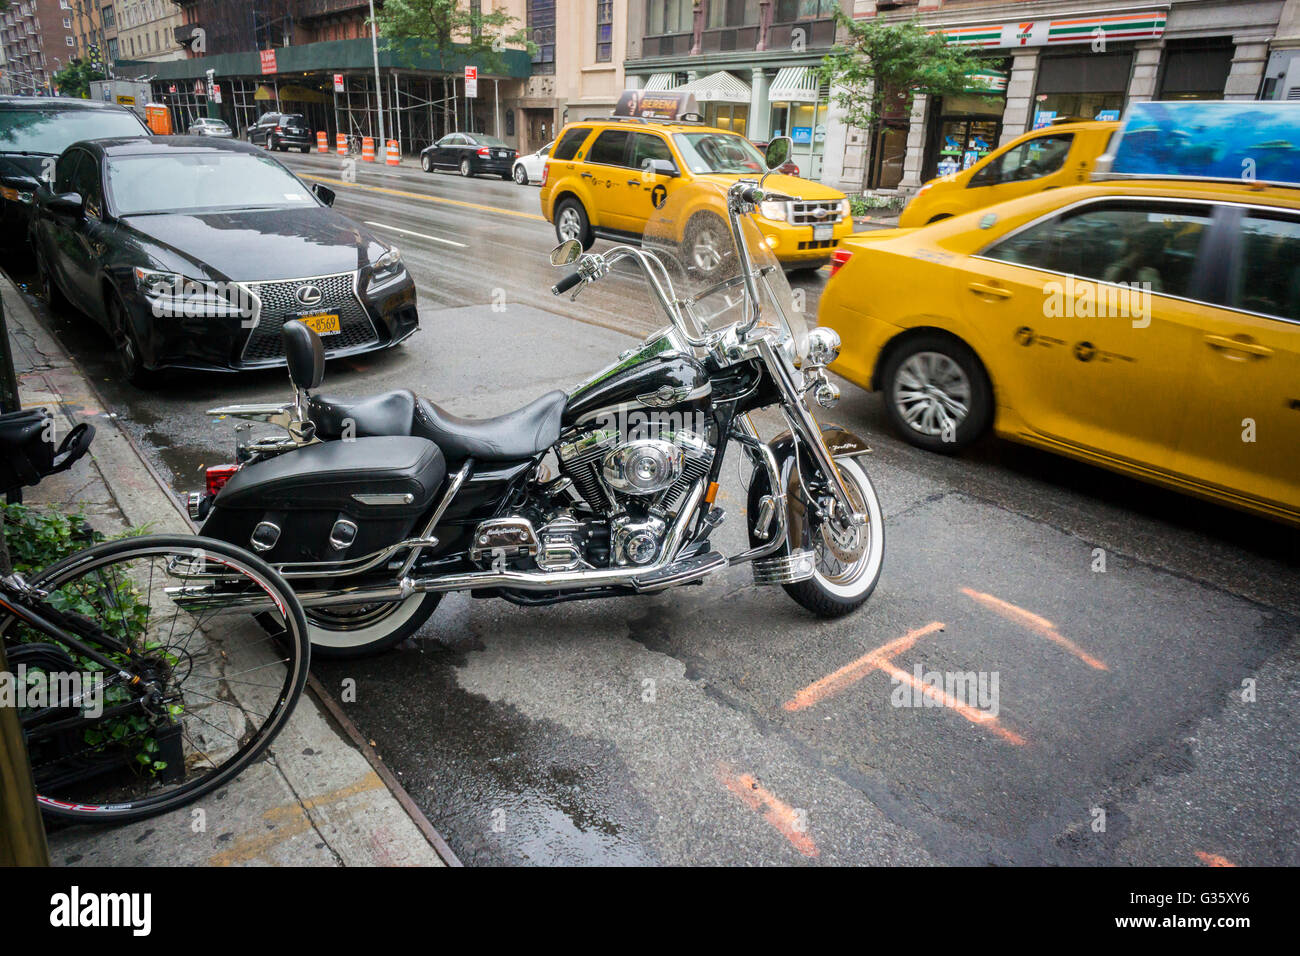 A Harley-Davidson motorcycle parked in New York on Sunday, June 5, 2016. (© Richard B. Levine) - Stock Image